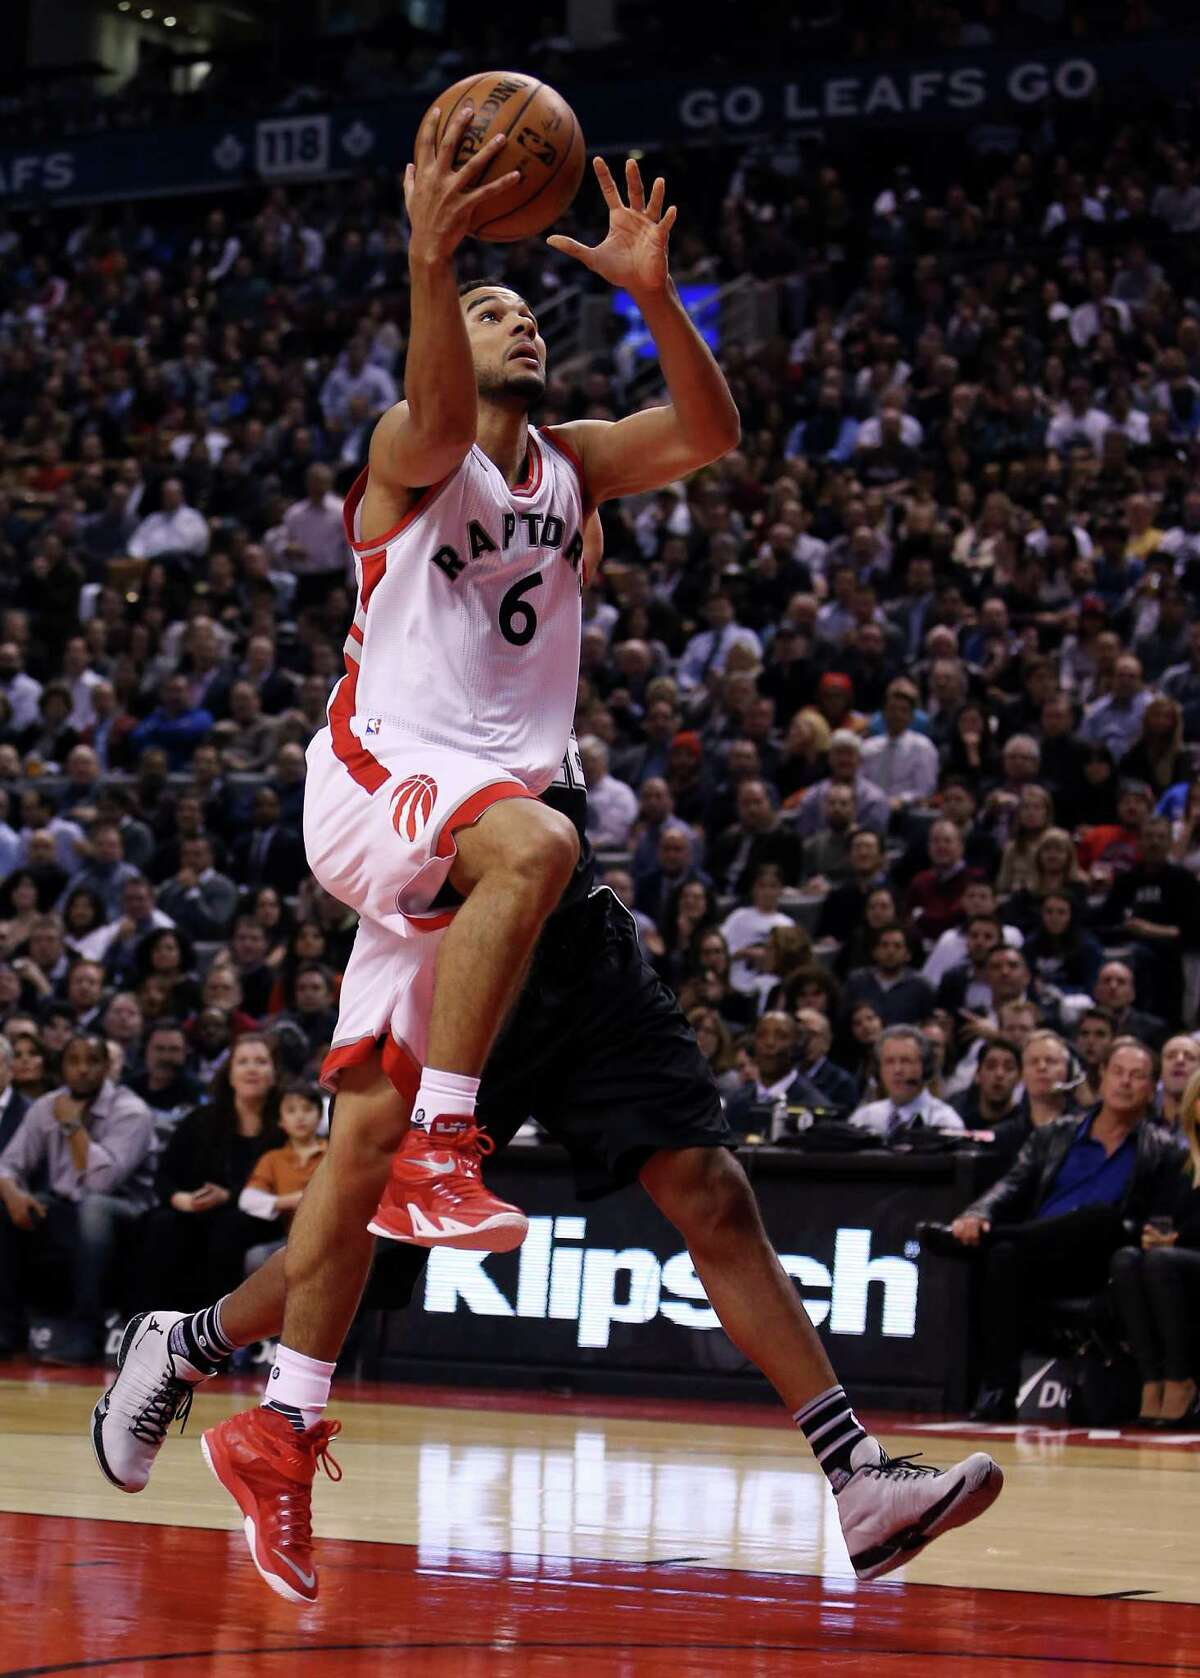 TORONTO, ON - DECEMBER 09: Cory Joseph #6 of the Toronto Raptors drives to the basket during an NBA game against the San Antonio Spurs at the Air Canada Centre on December 09, 2015 in Toronto, Ontario, Canada. NOTE TO USER: User expressly acknowledges and agrees that, by downloading and or using this photograph, User is consenting to the terms and conditions of the Getty Images License Agreement.